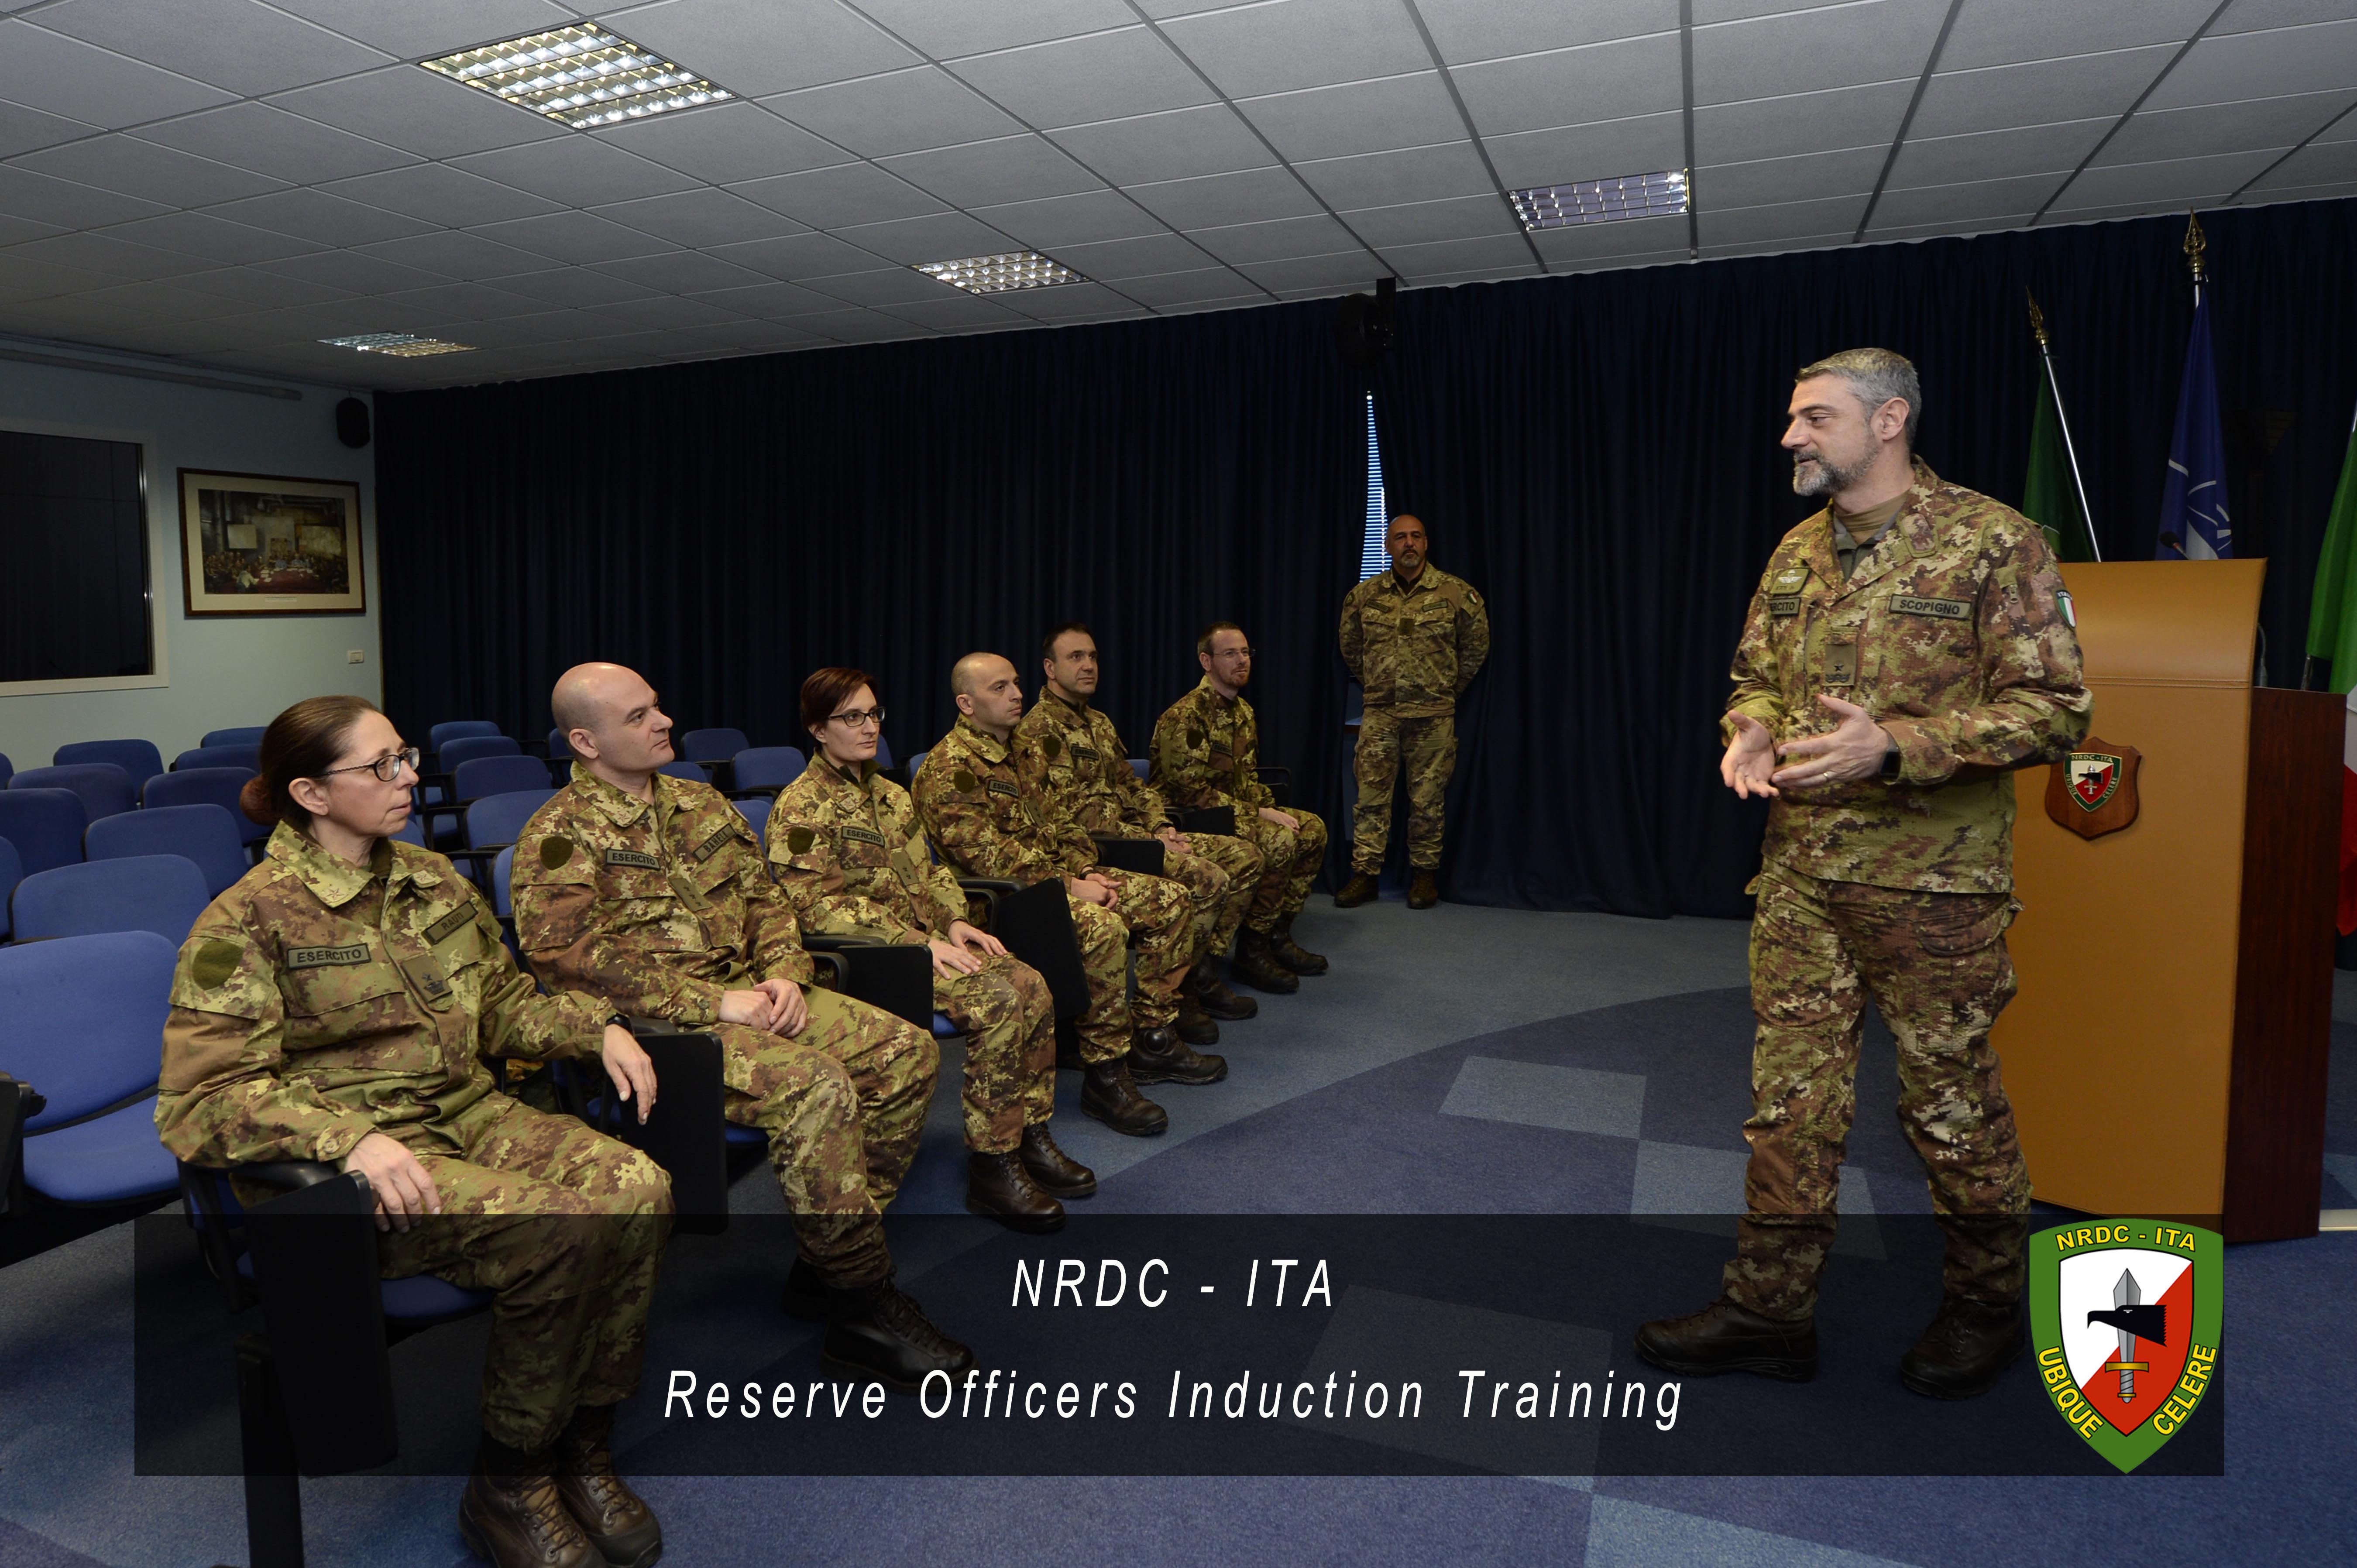 Closing day for the Italian Reserve Officers Induction Training